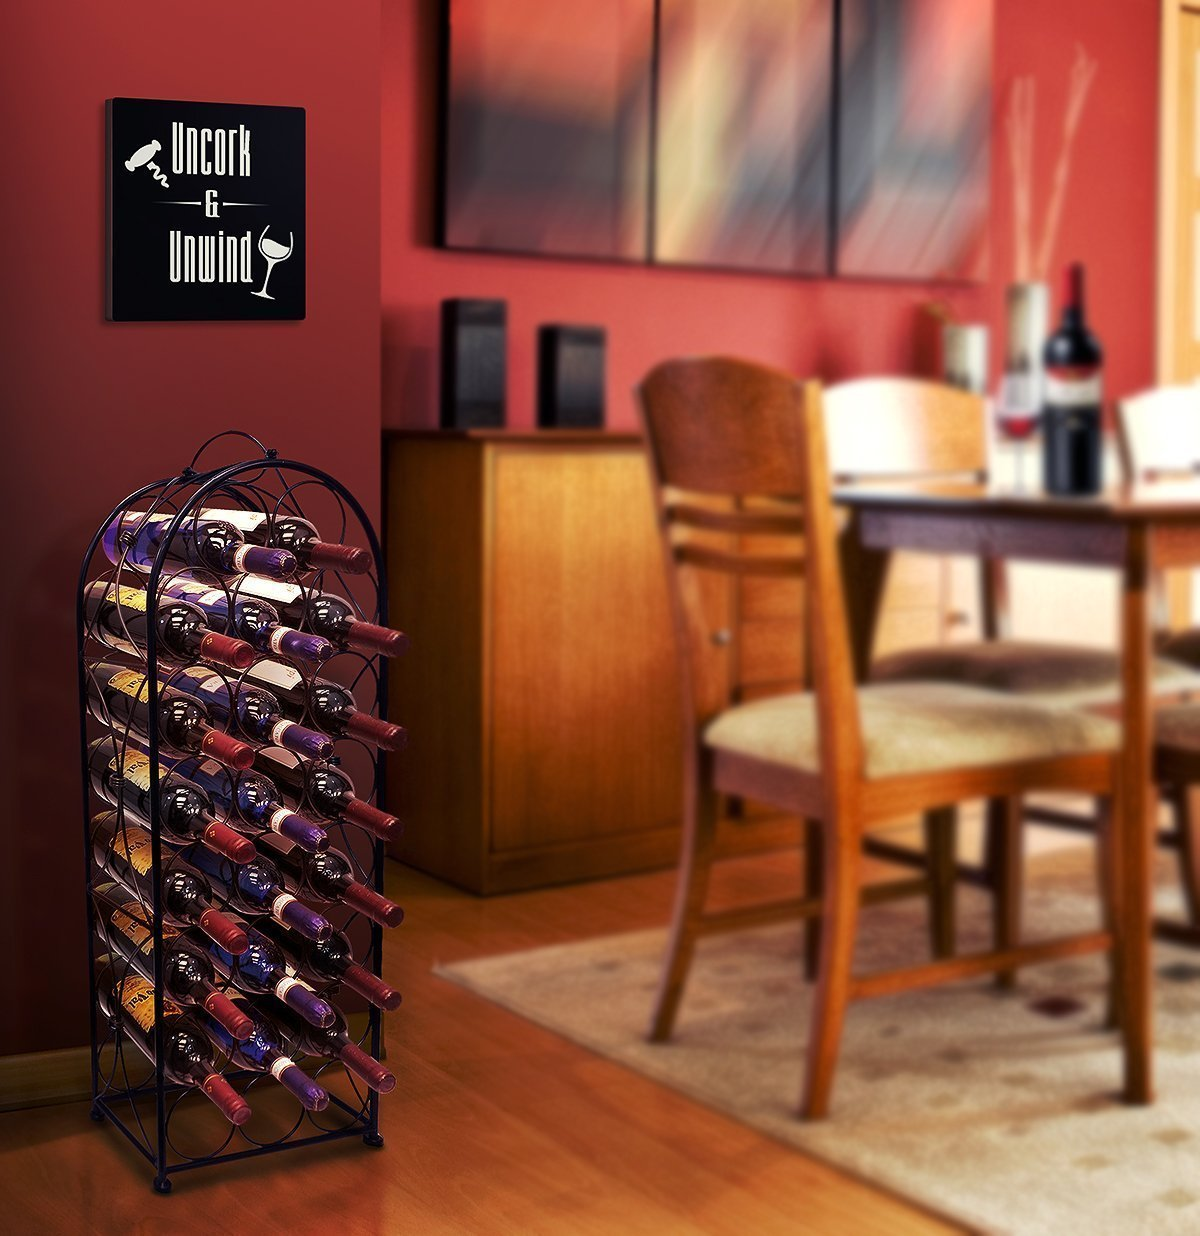 Sorbus Wine Rack Stand Bordeaux Chateau Style - Holds 23 Bottles of Your Favorite Wine - Elegant Looking French Style Wine Rack to Compliment Any Space - No Assembly Required (Black) by Sorbus (Image #3)